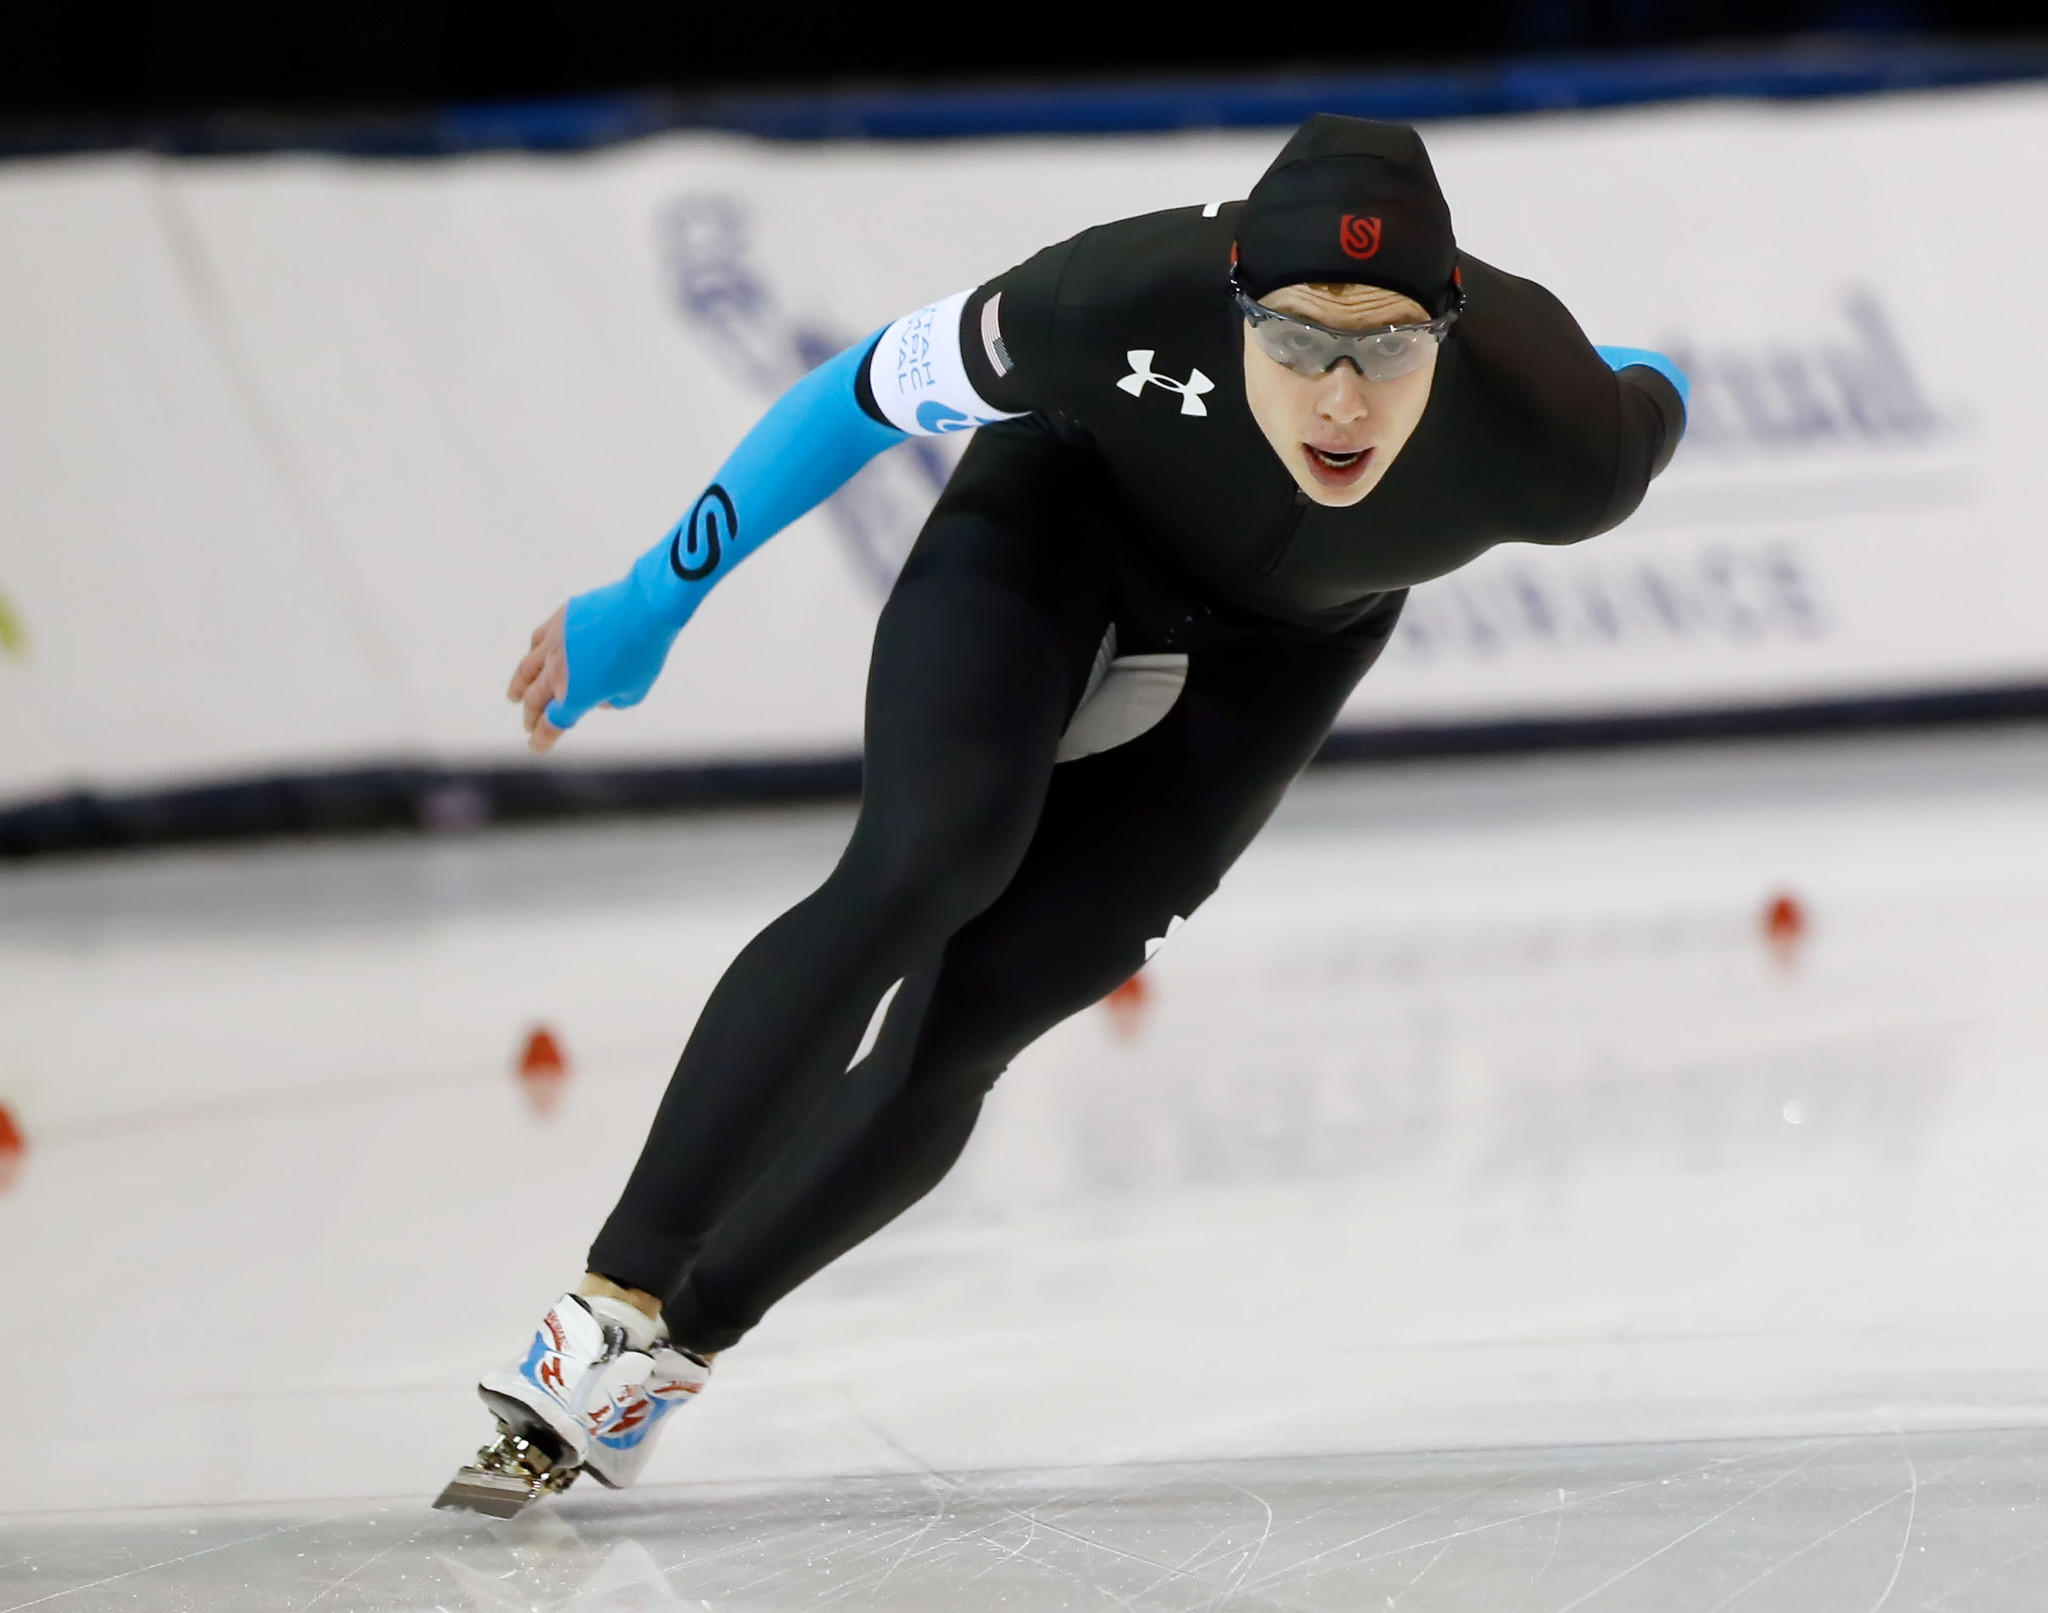 Brian Hansen competes in the 1000m during the U.S. Olympic speedskating trials at Utah Olympic Oval.